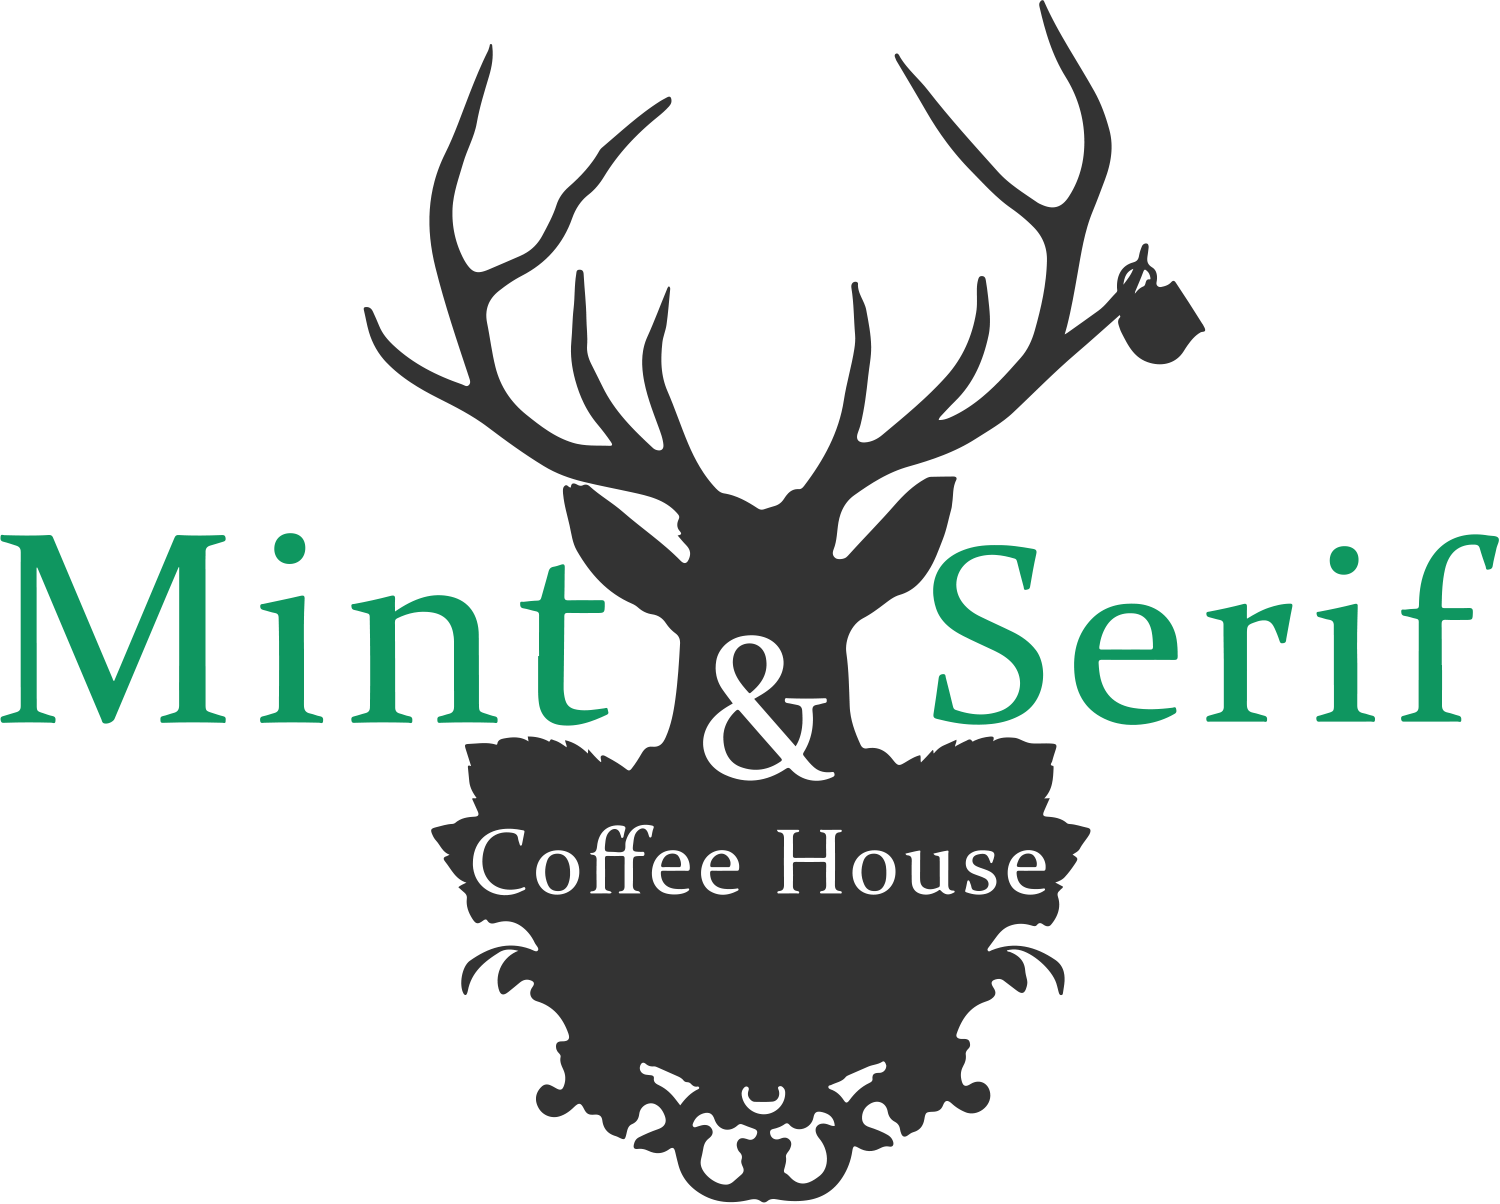 Mint & Serif Coffee House